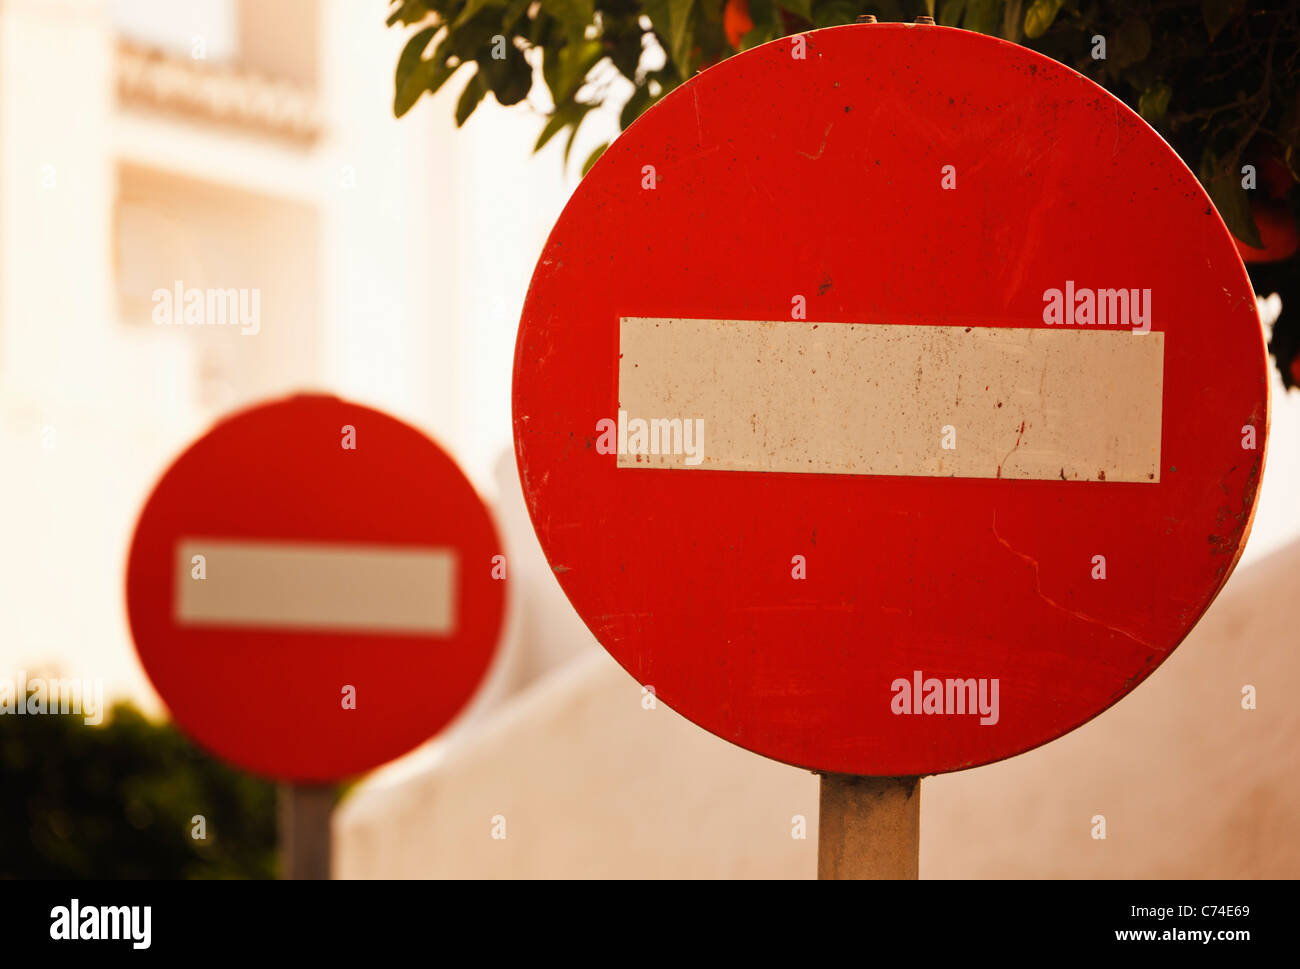 Two No Entry traffic signs. - Stock Image